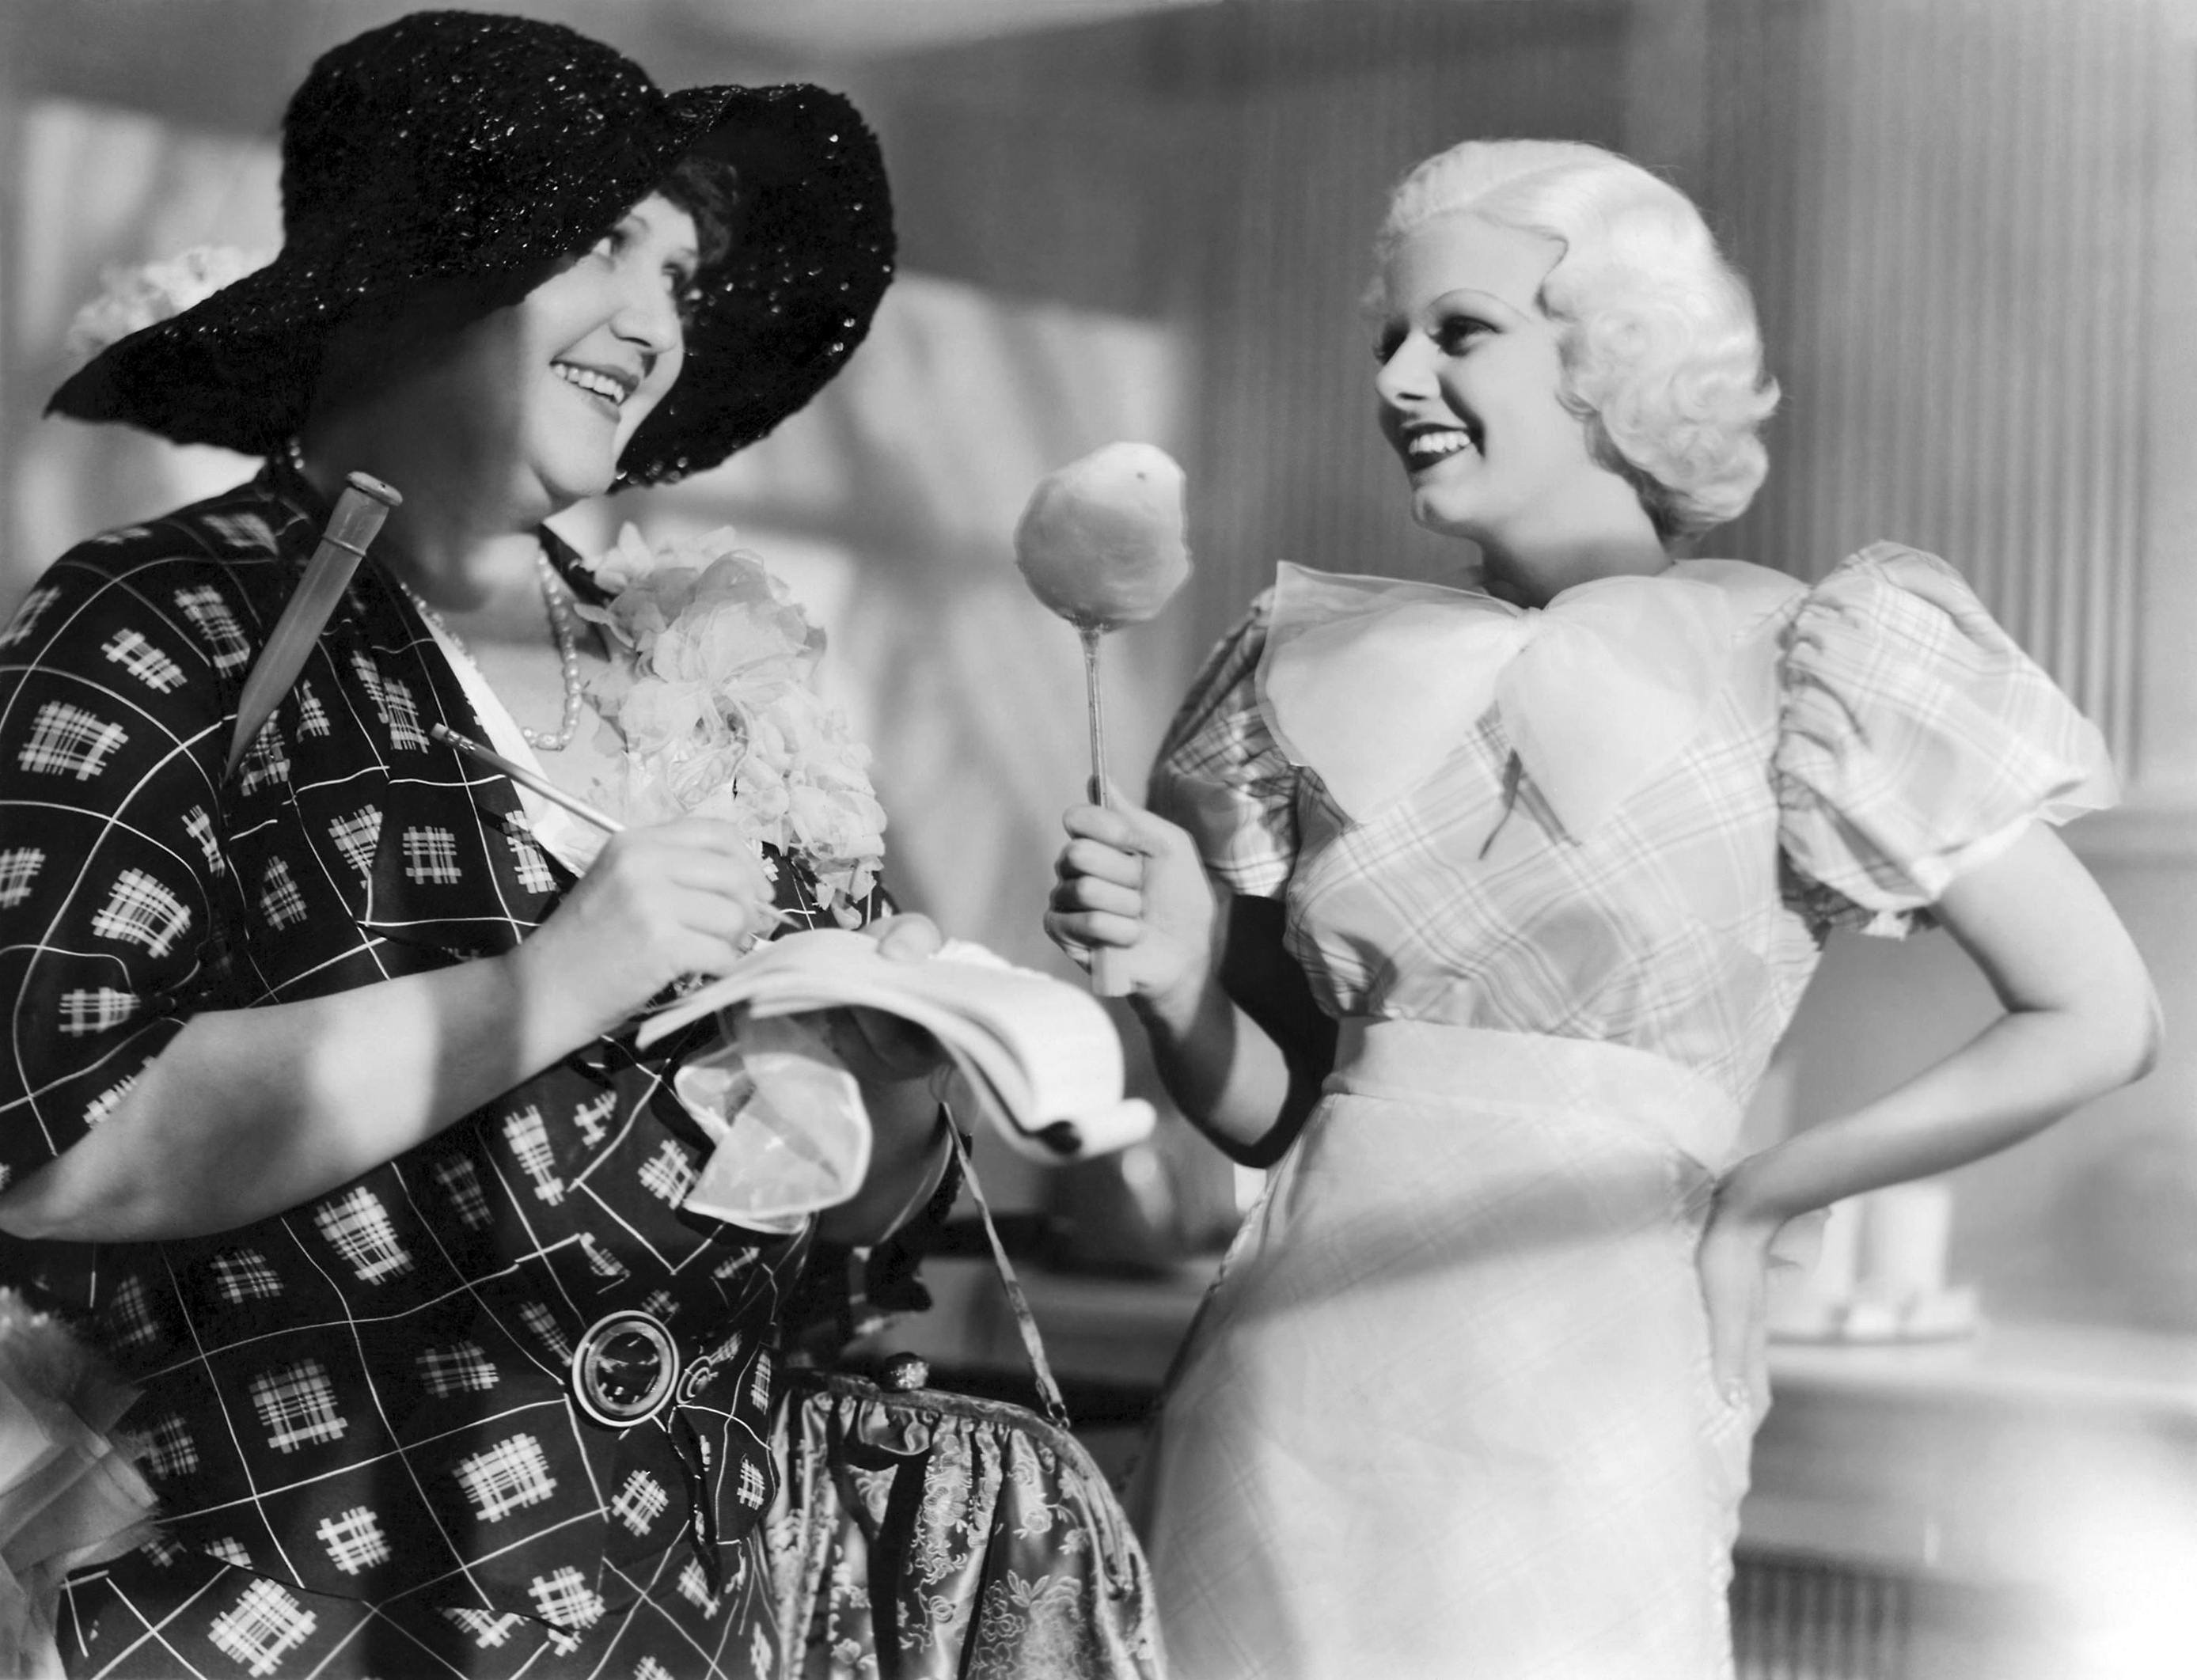 Jean Harlow in Bombshell With Mary Forbes (L)